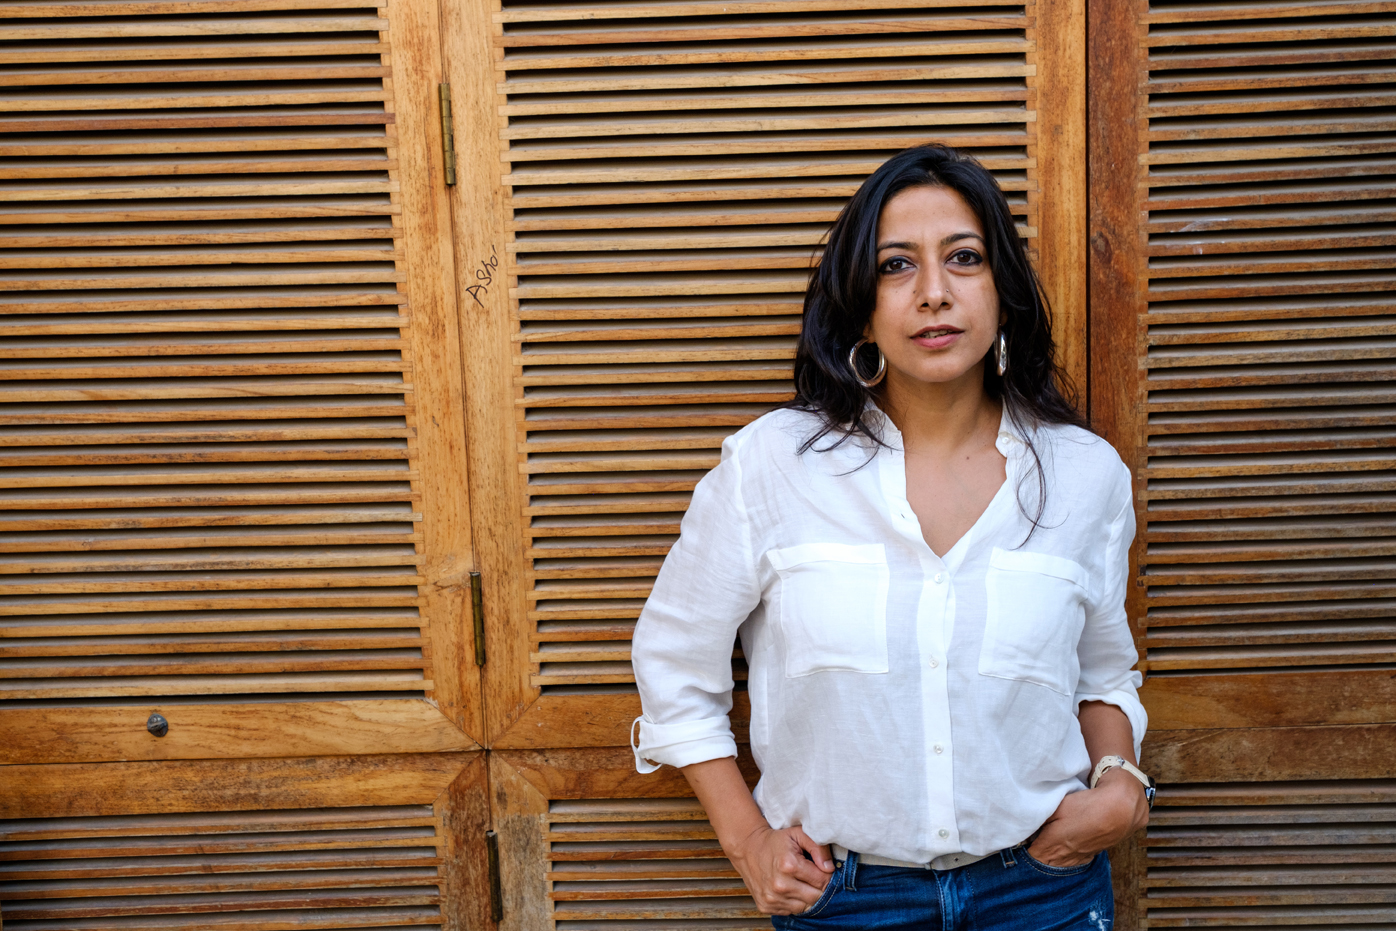 Dentsu India appoints Malvika Mehra as Chief Creative Officer – to also launch Dentsu India Tomorrow Lab – the new Design & Innovation unit